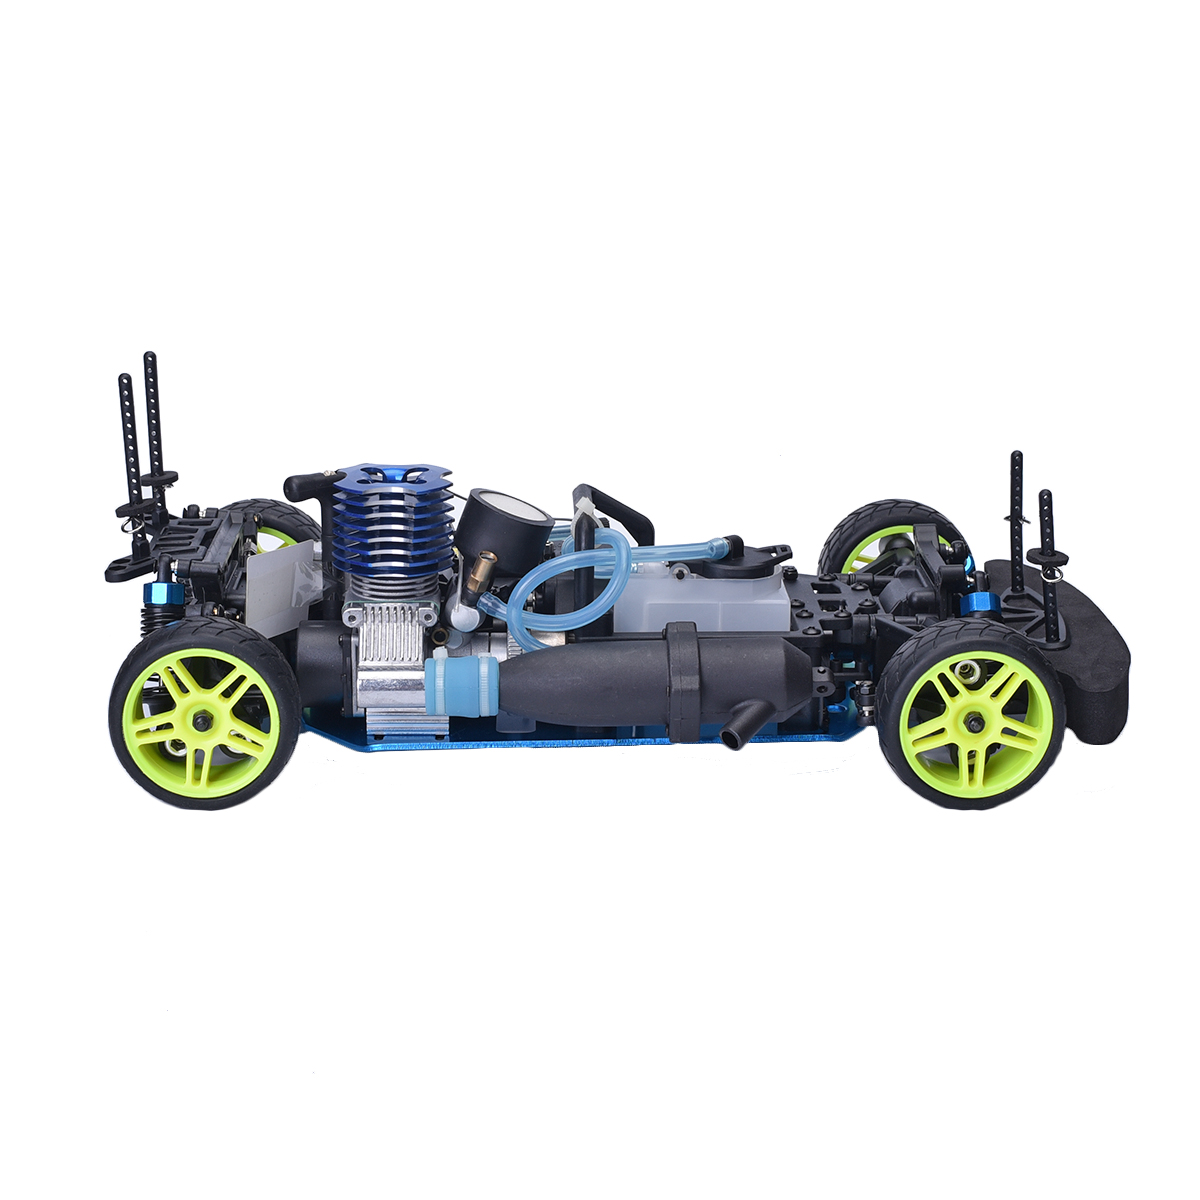 hsp 1 10 scale models gas 4wd rc car high speed off road. Black Bedroom Furniture Sets. Home Design Ideas